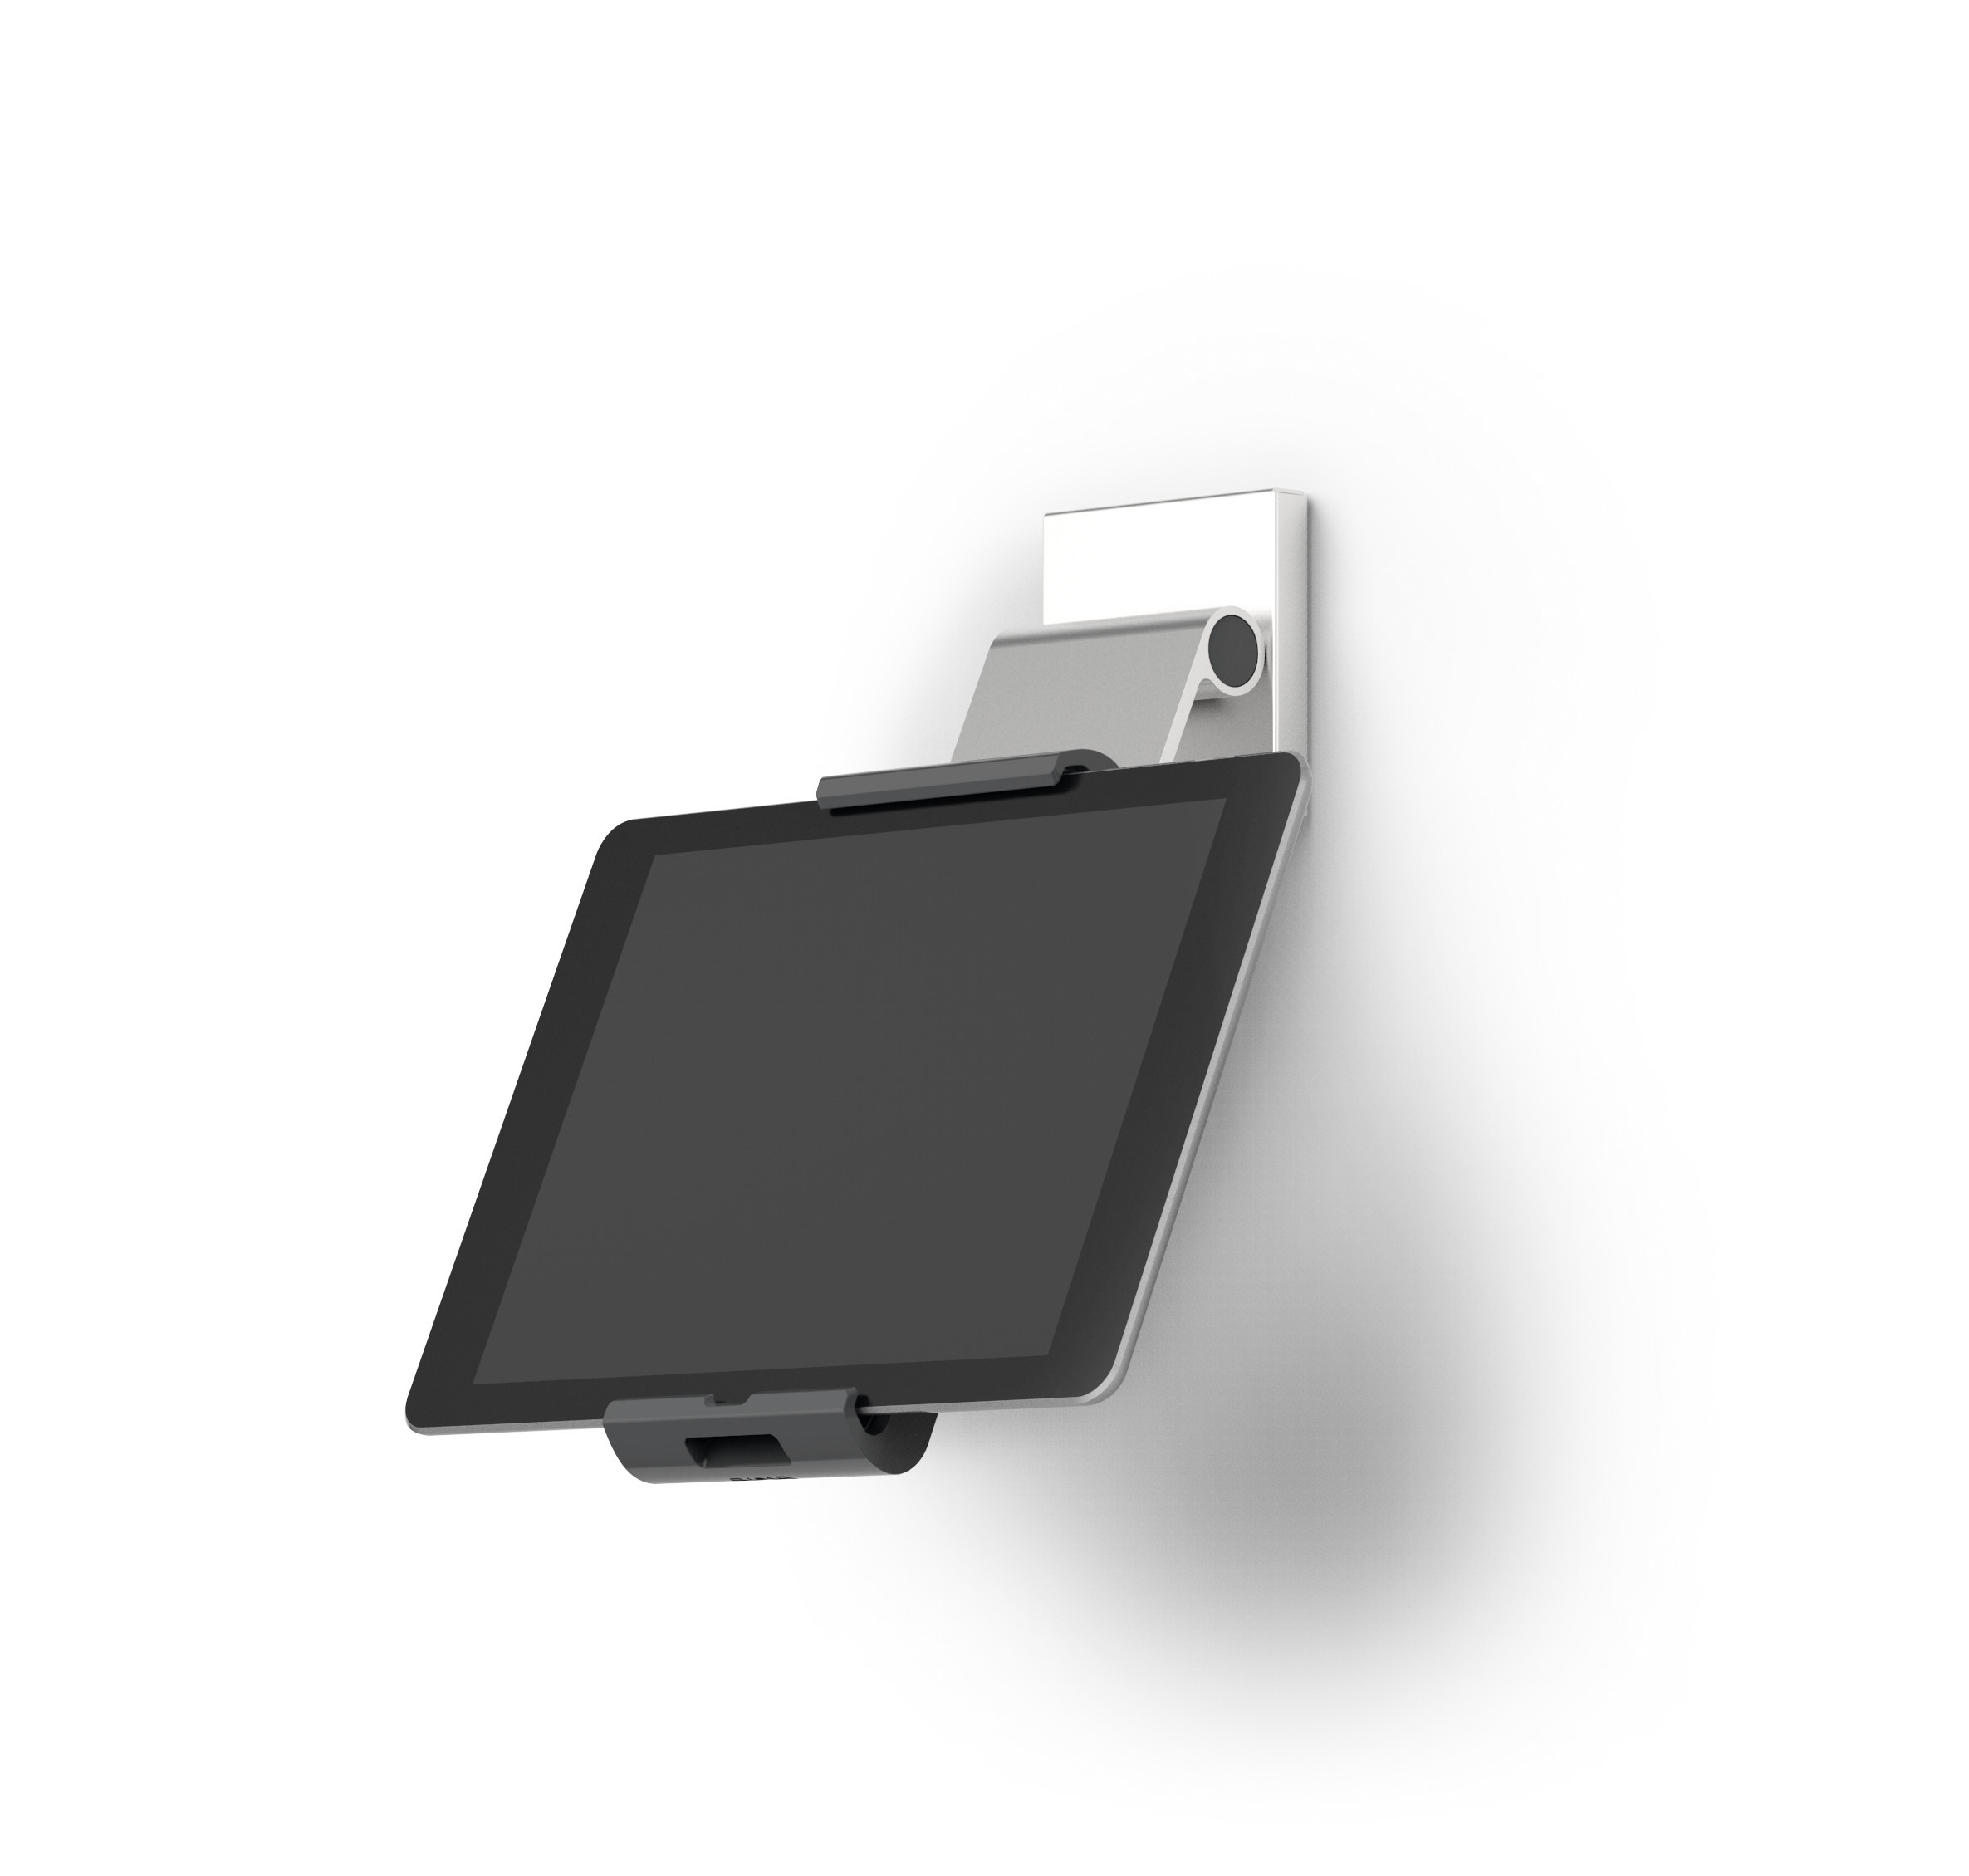 DURABLE TABLET HOLDER WALL PRO 1 ST Z893599